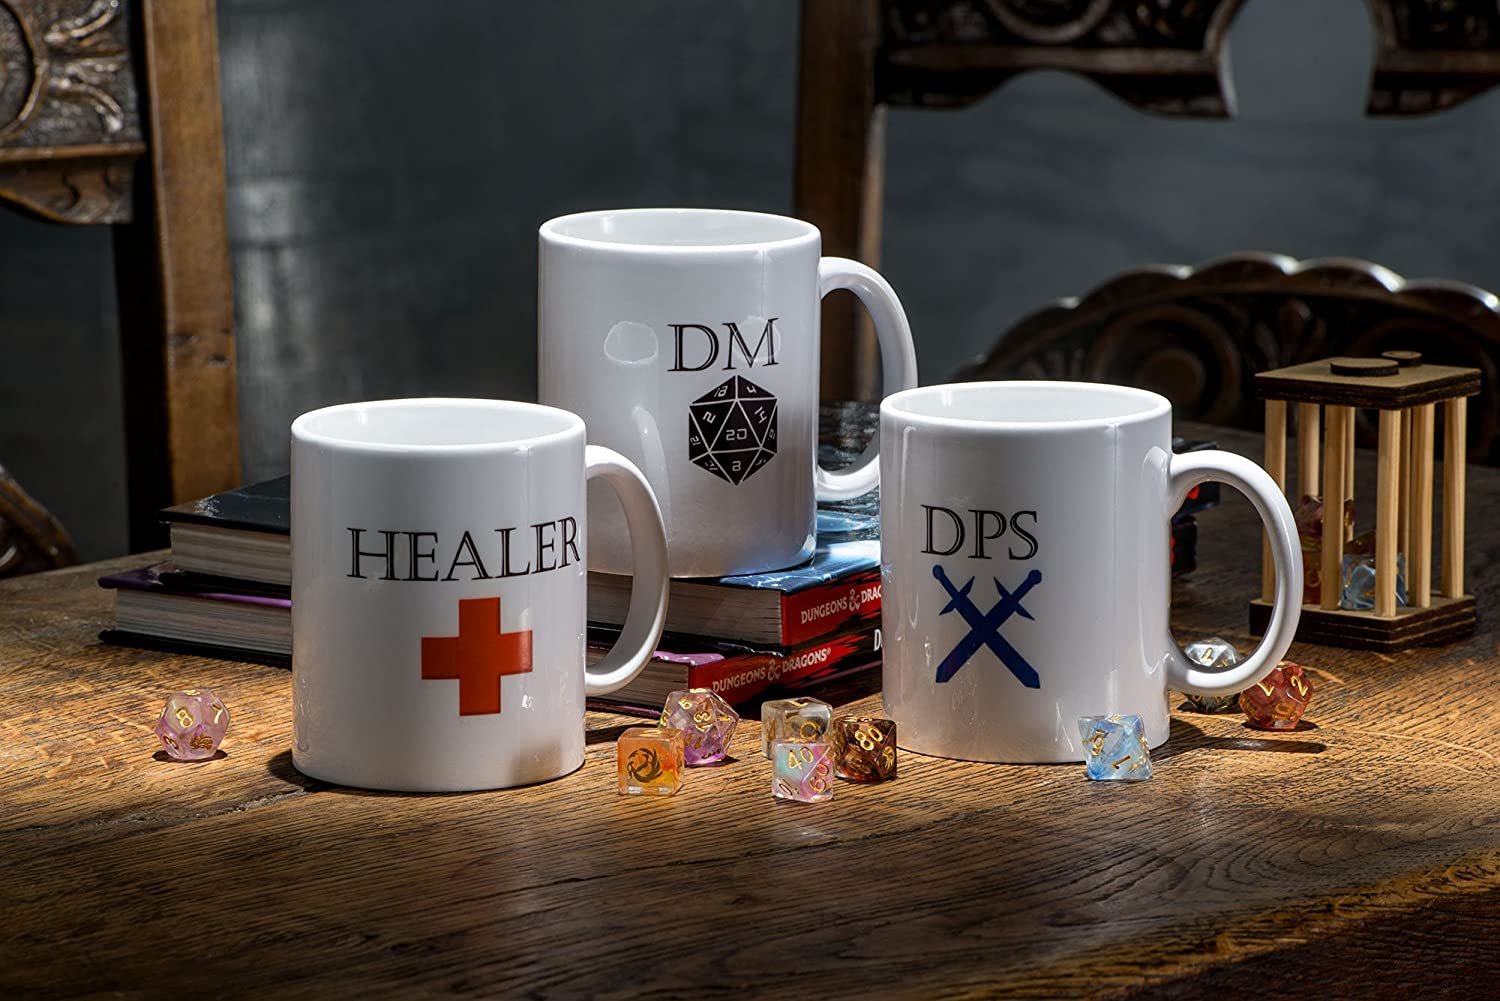 RPG Coffee Mug, Pathfinder Mug, Dungeons and Dragons Mug, Fantasy Mug, Geek Gift, DnD Present, Geek Mug, Gaming Mug, Geek Gamers Mug, Gift